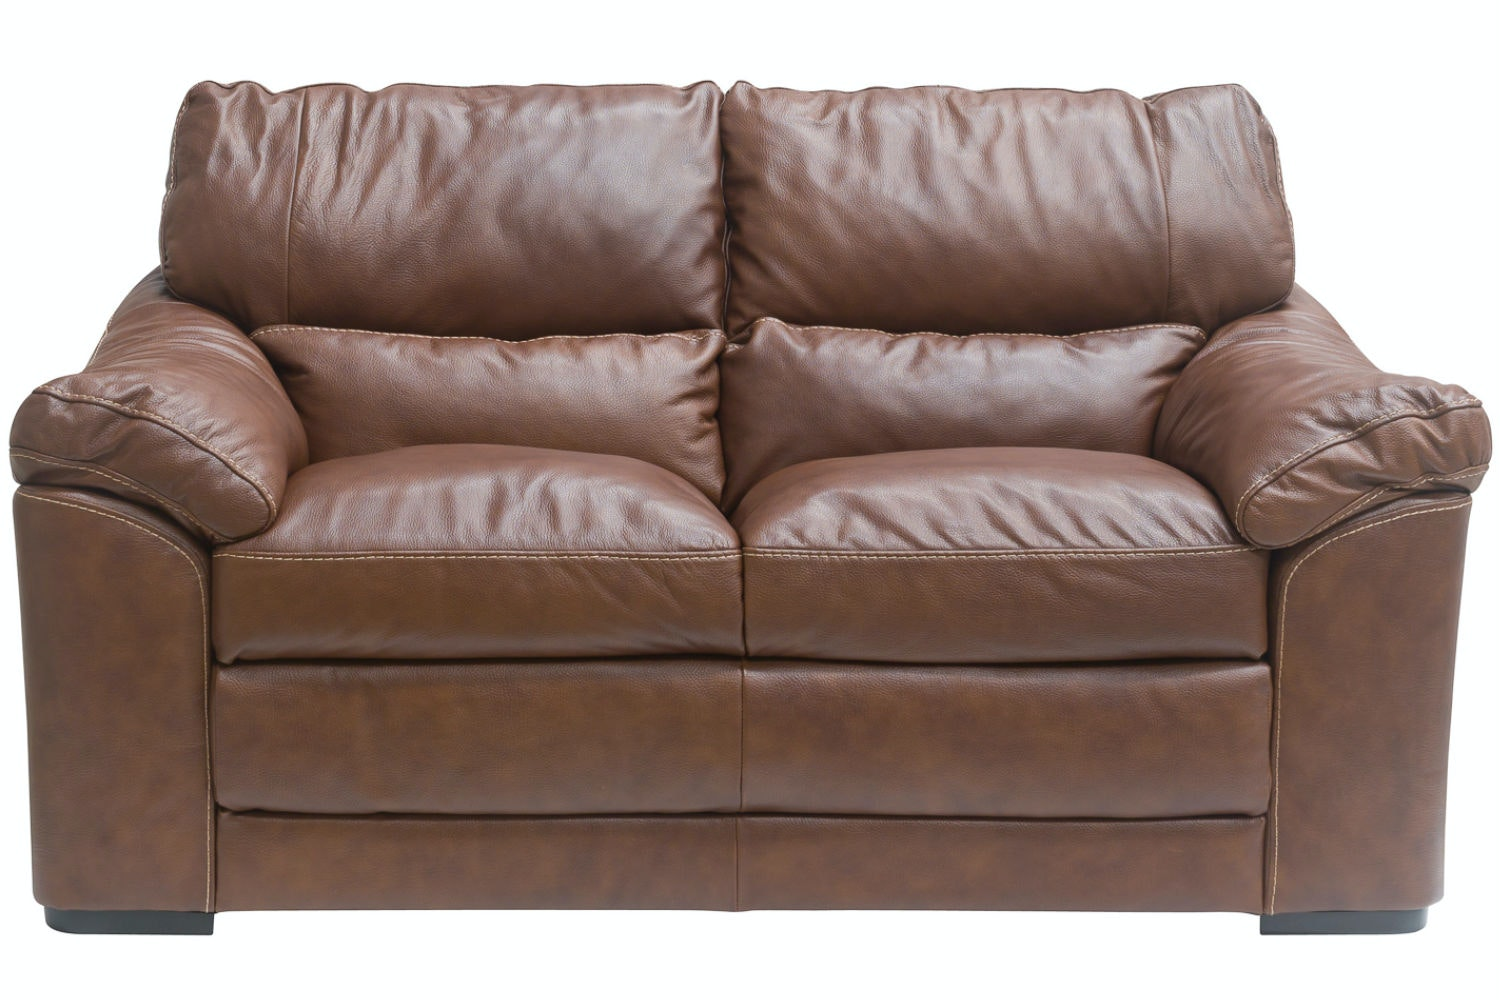 Senna Leather 2 Seater Sofa